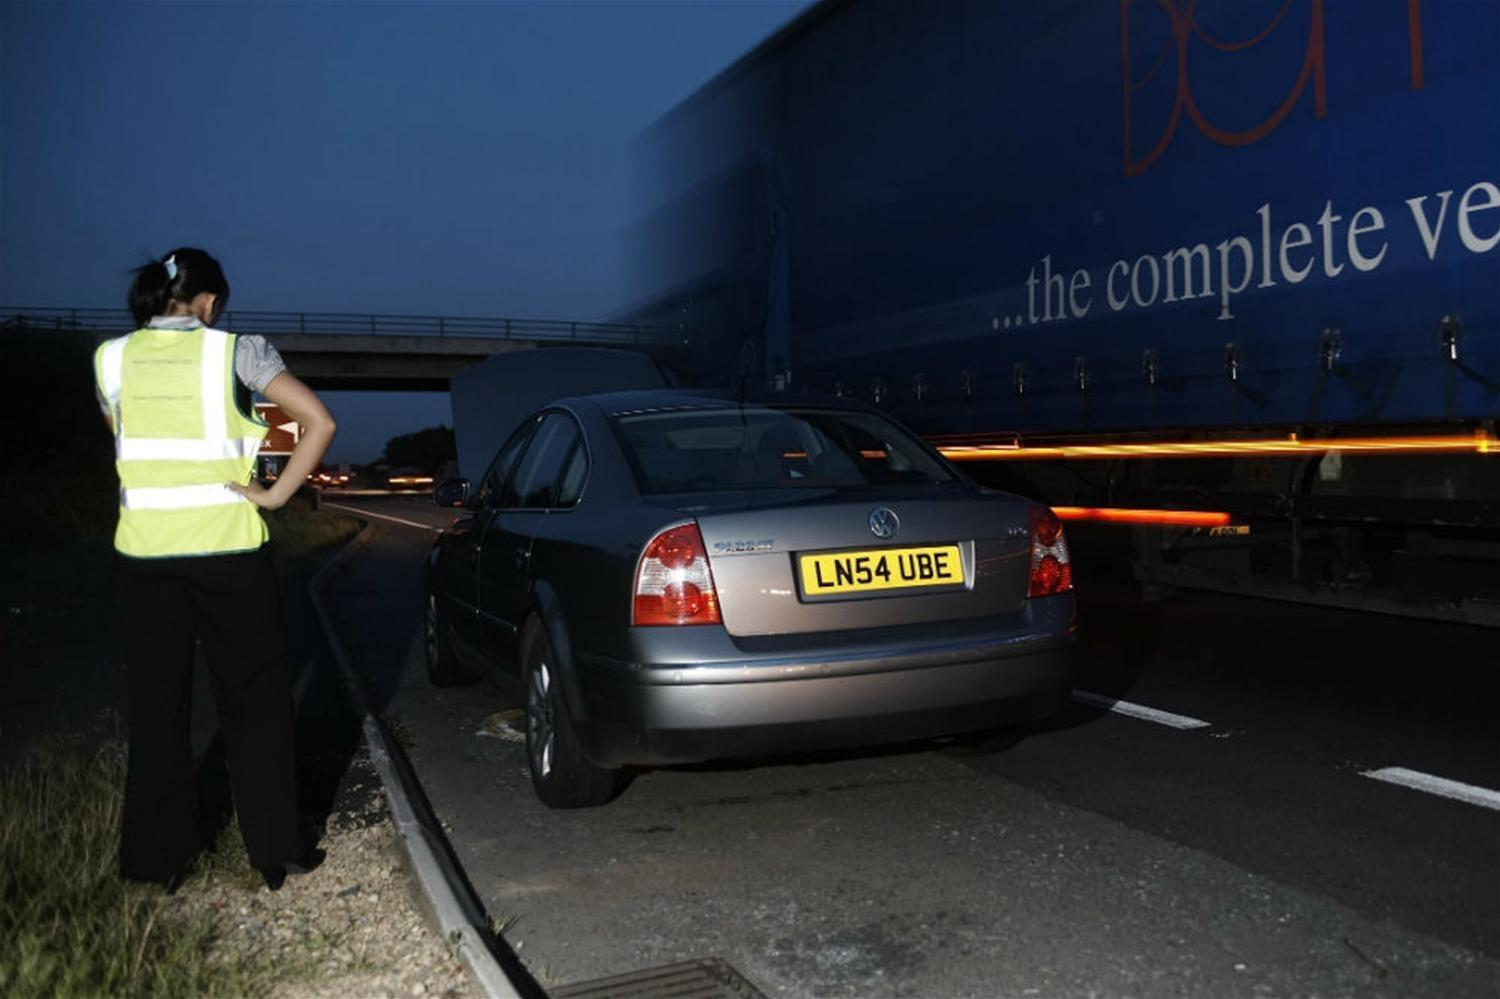 What to do if you breakdown on the motorway